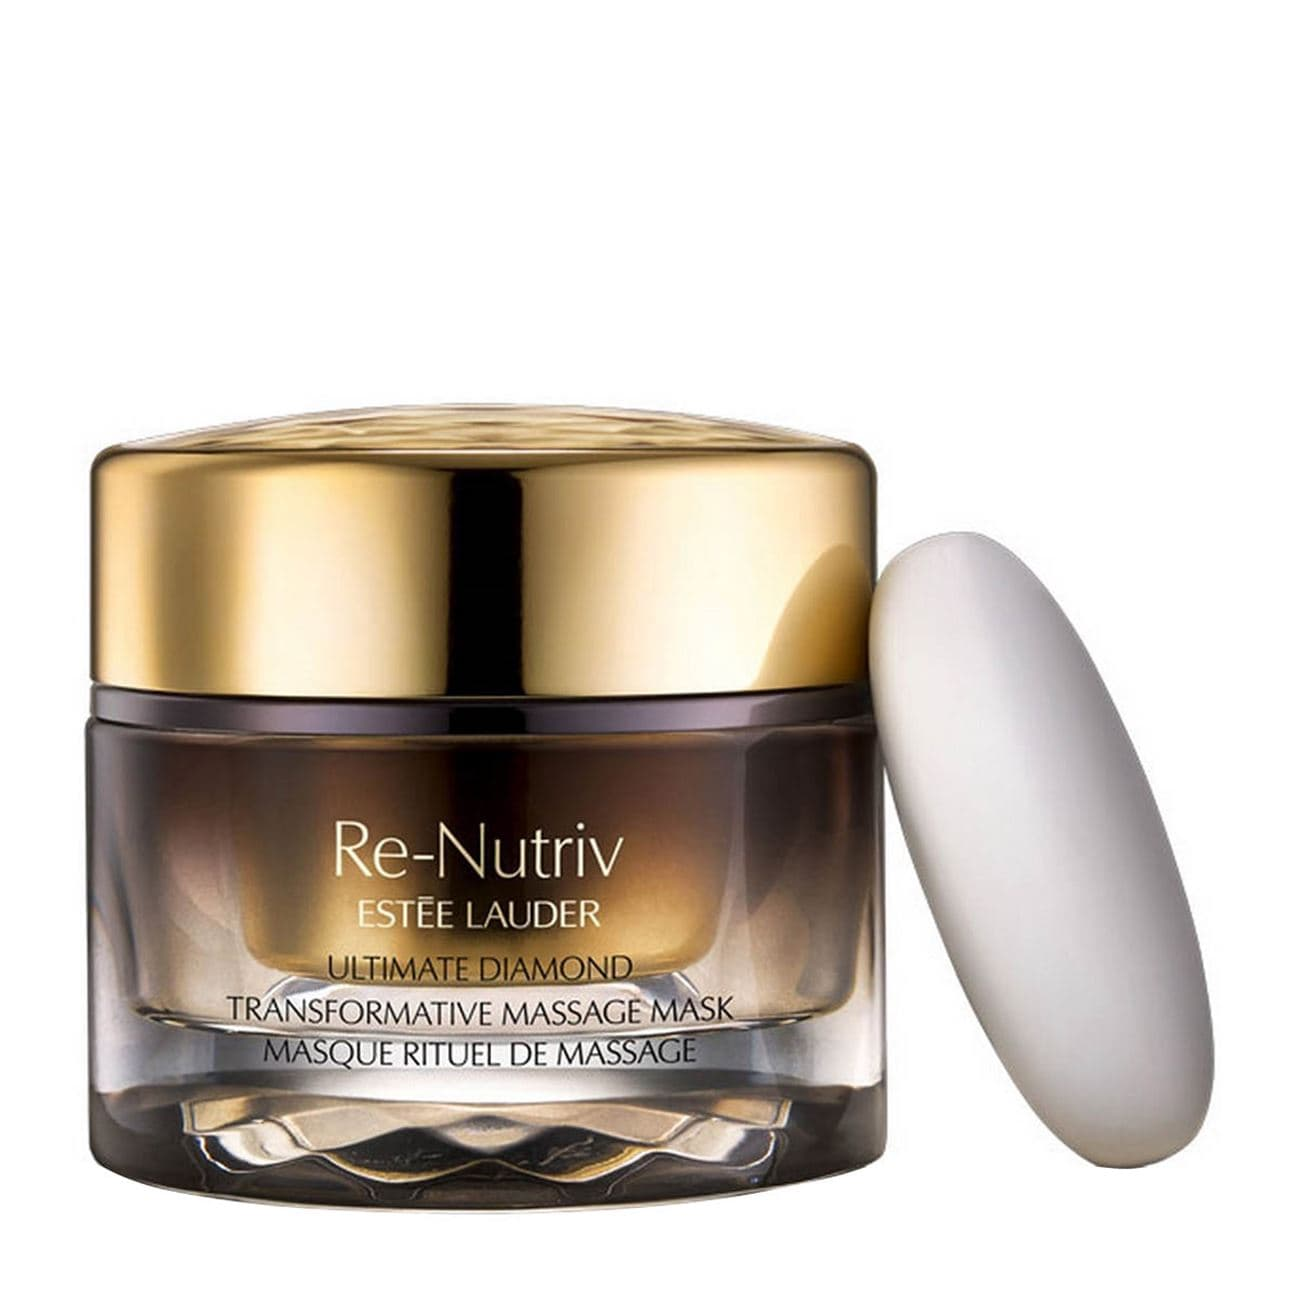 Re-Nutriv Ultimate Diamond TransformativeMassage Mask